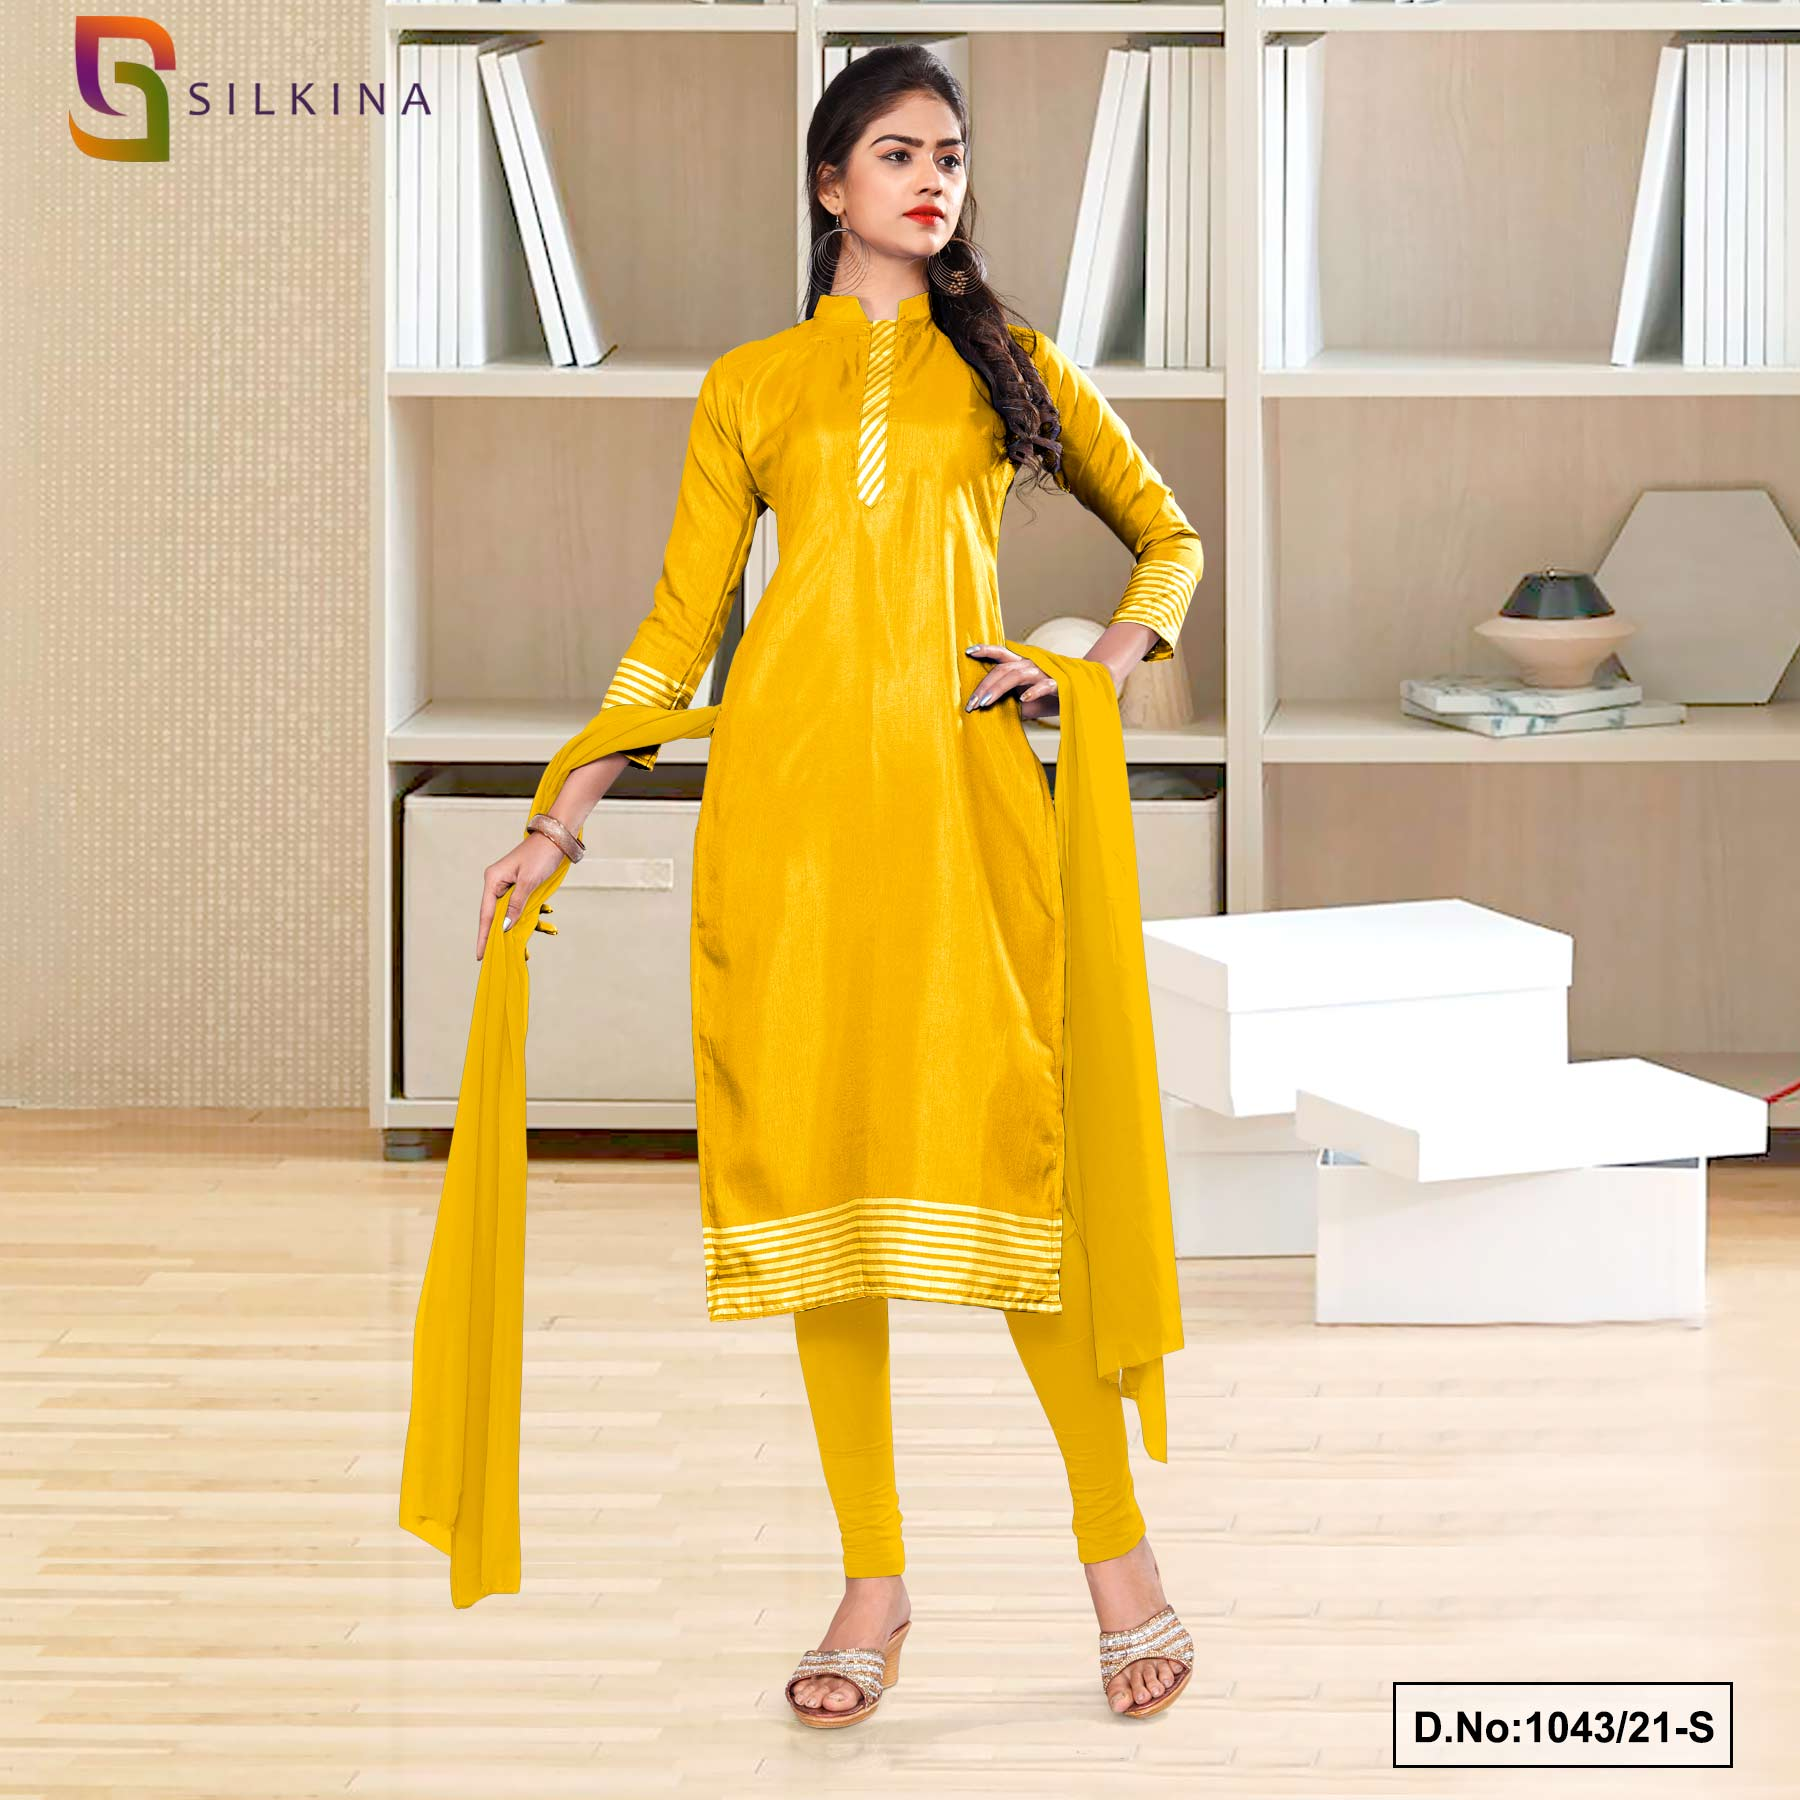 Yellow Gold Plain Border Premium Polycotton Raw Silk Salwar Kameez for Staff Uniform Sarees